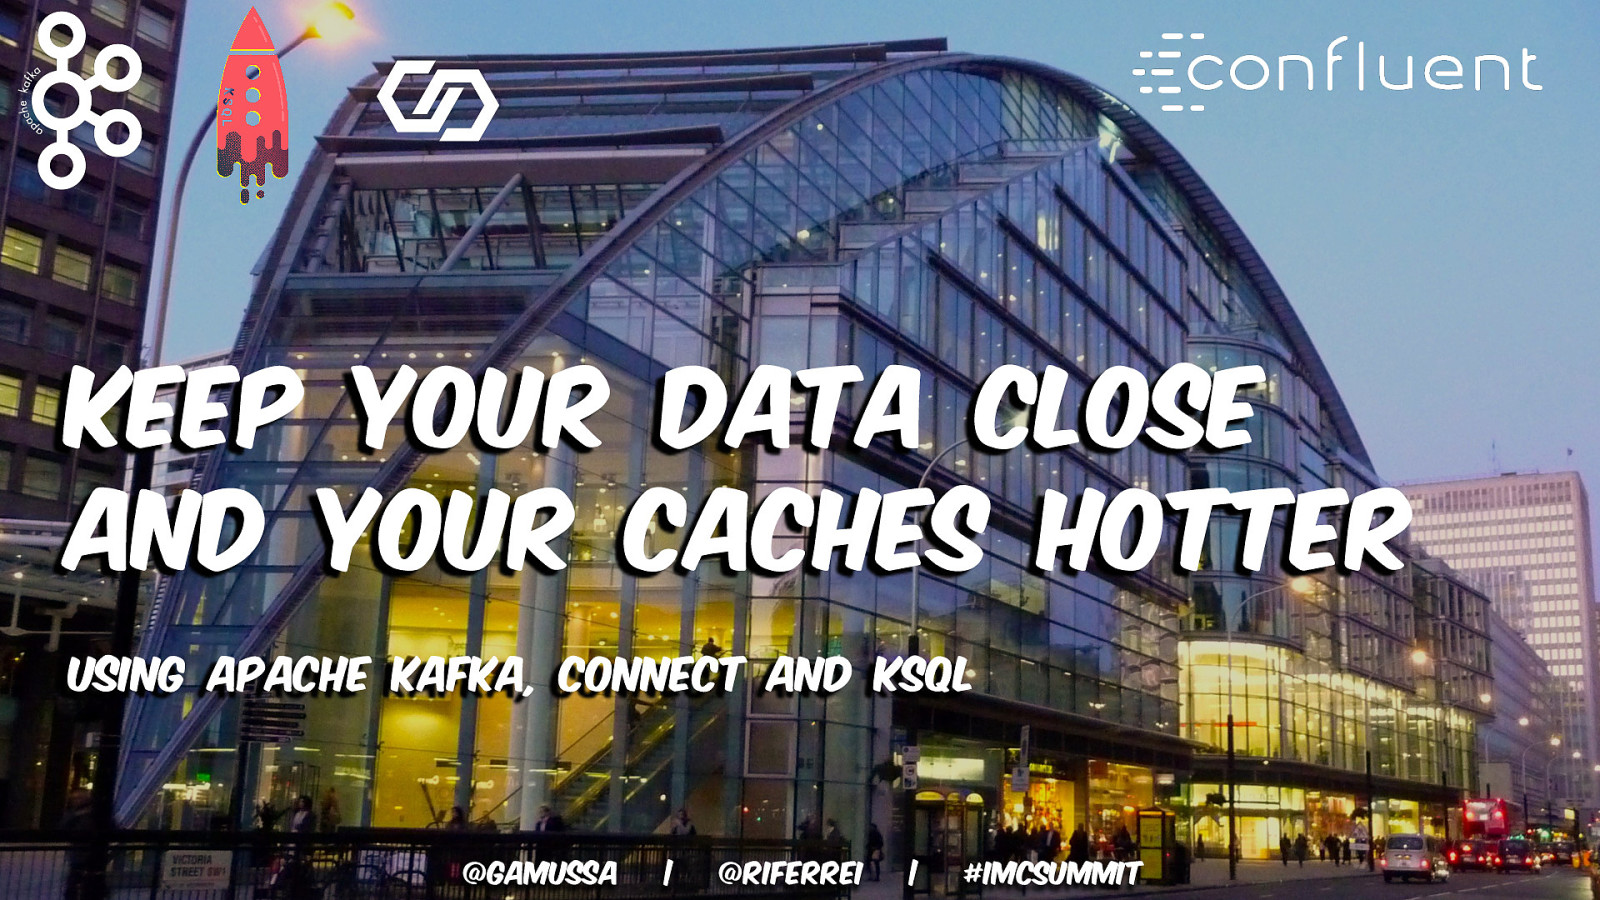 Keeping your Data Close and your Caches Hotter